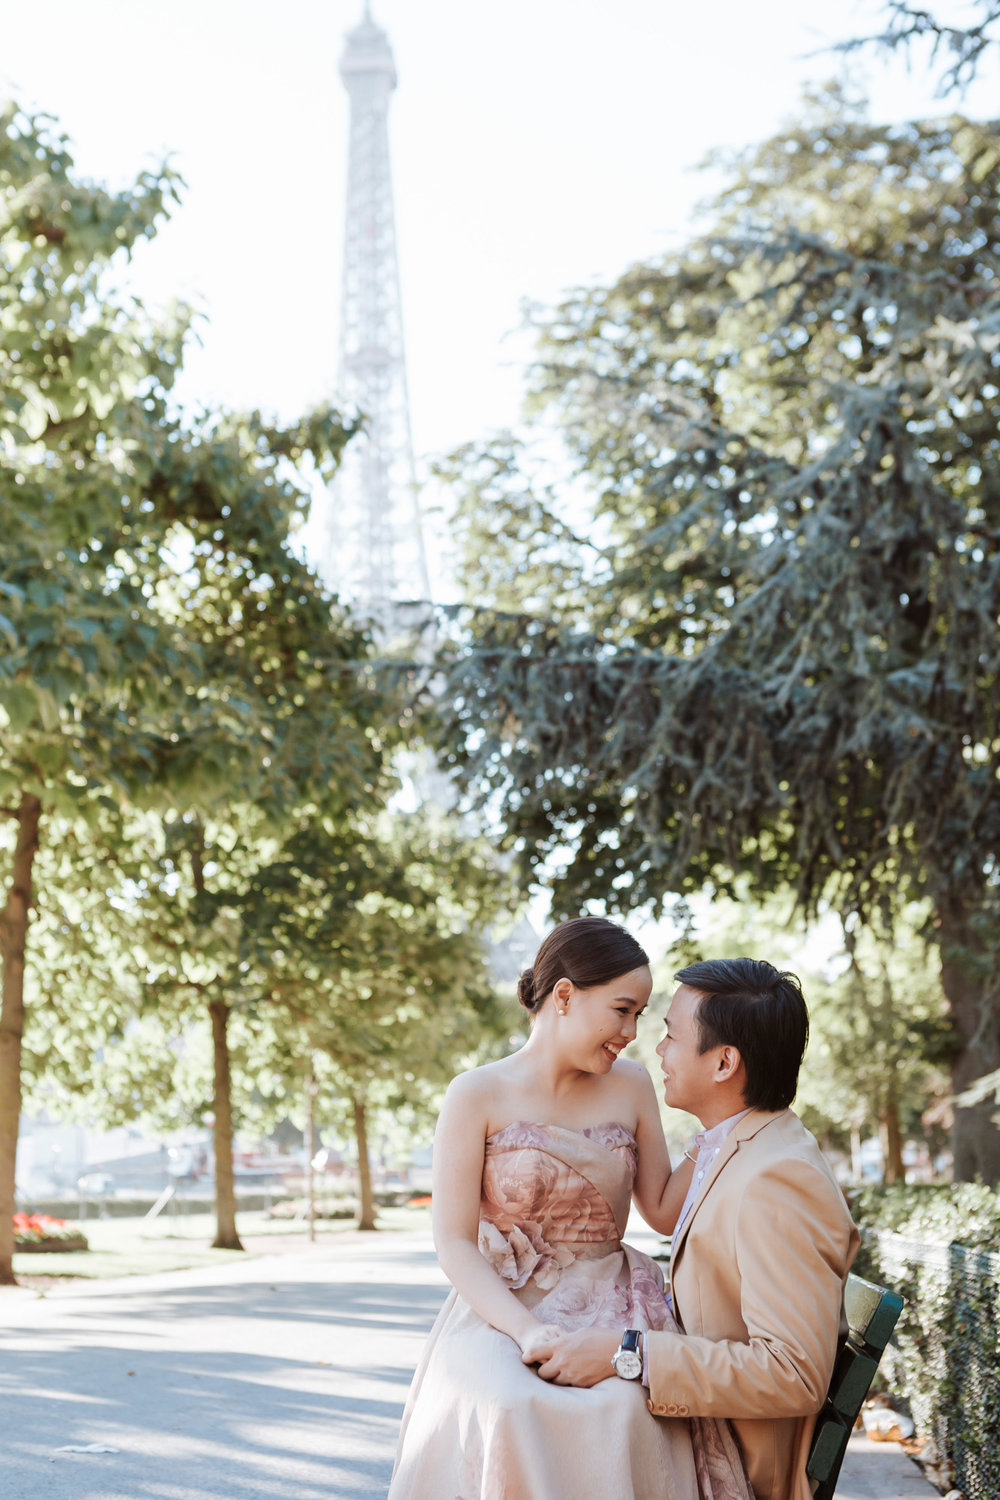 Pre-wedding couple portrait session sitting on a bench at Trocadero by the Eiffel Tower in sunrise captured by Photographer in Paris Federico Guendel